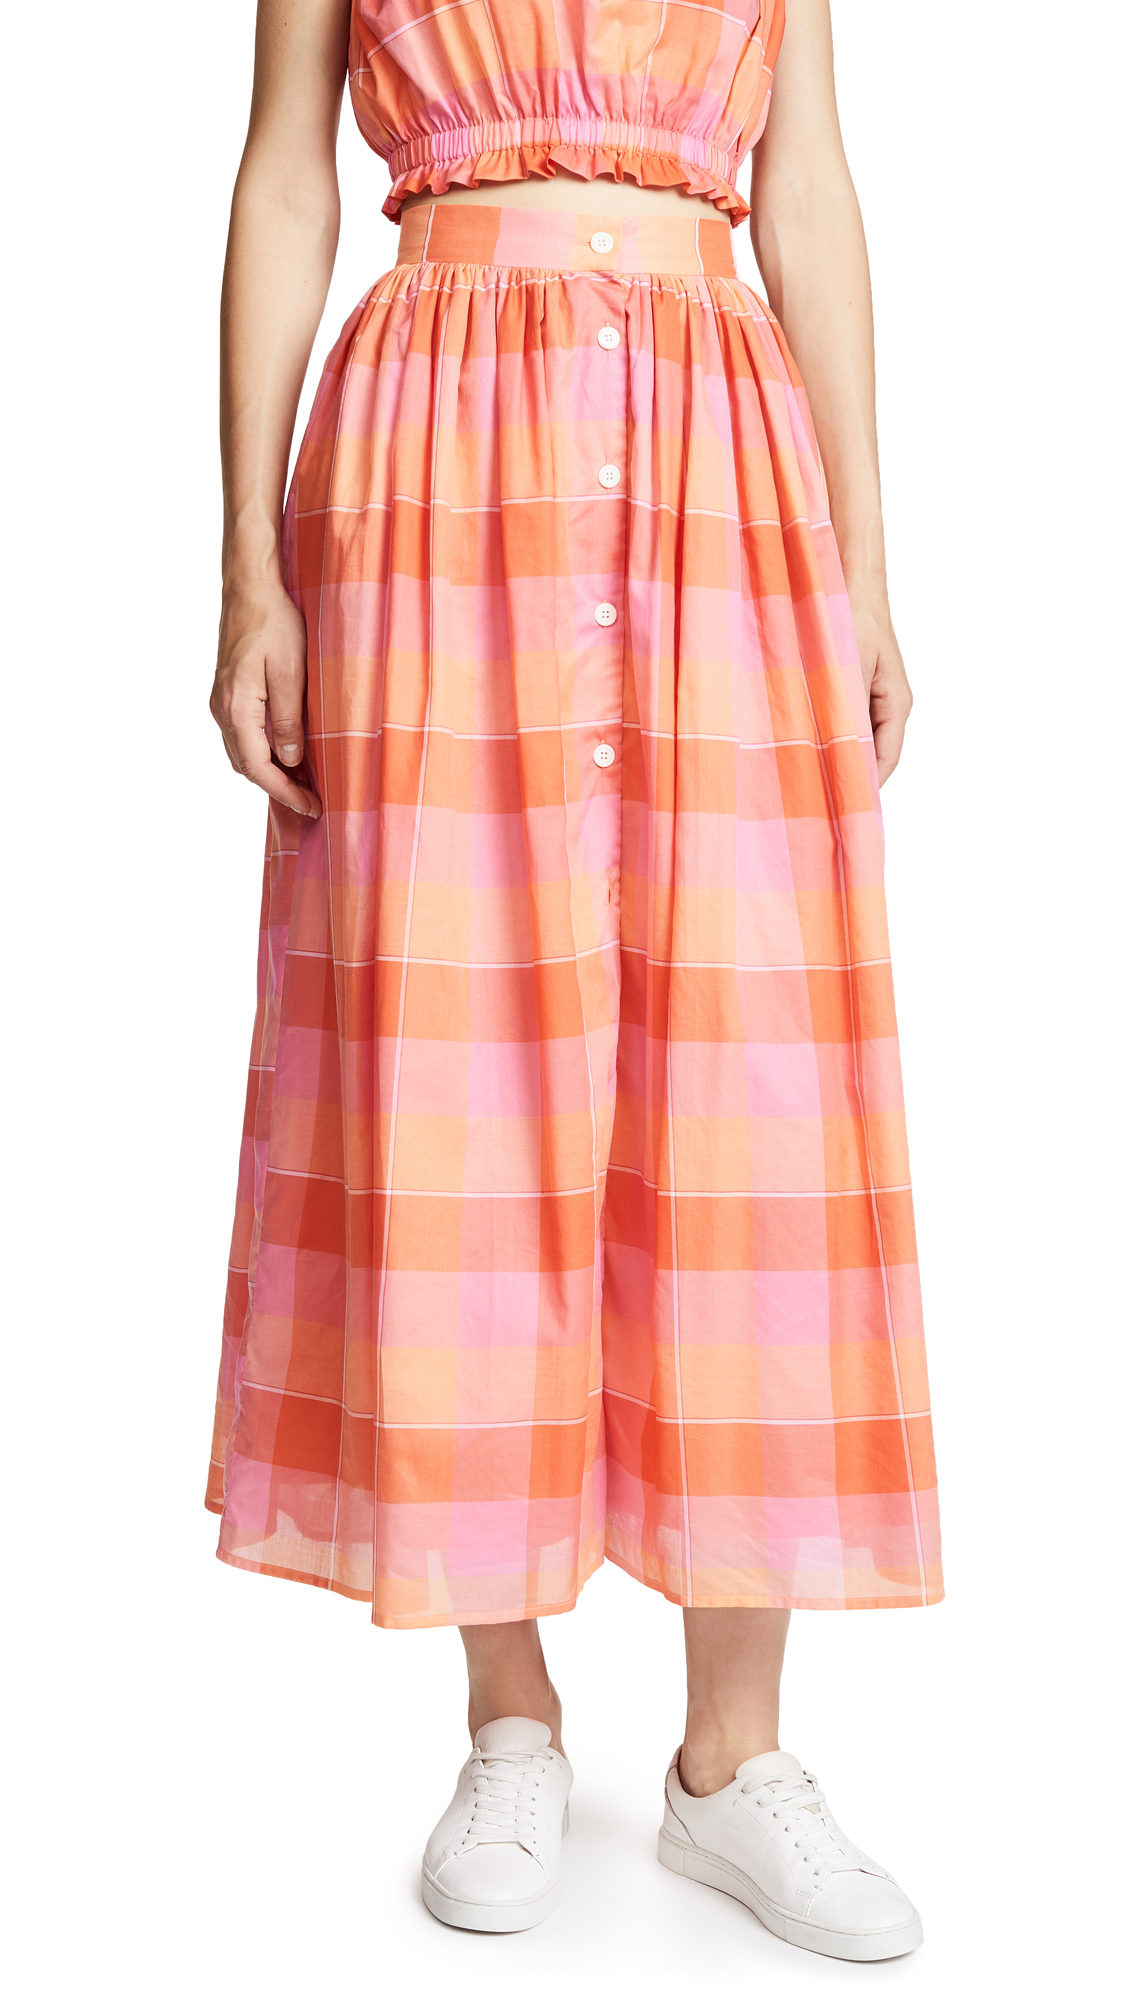 MDS Stripes Button Front Skirt In Orange Plaid